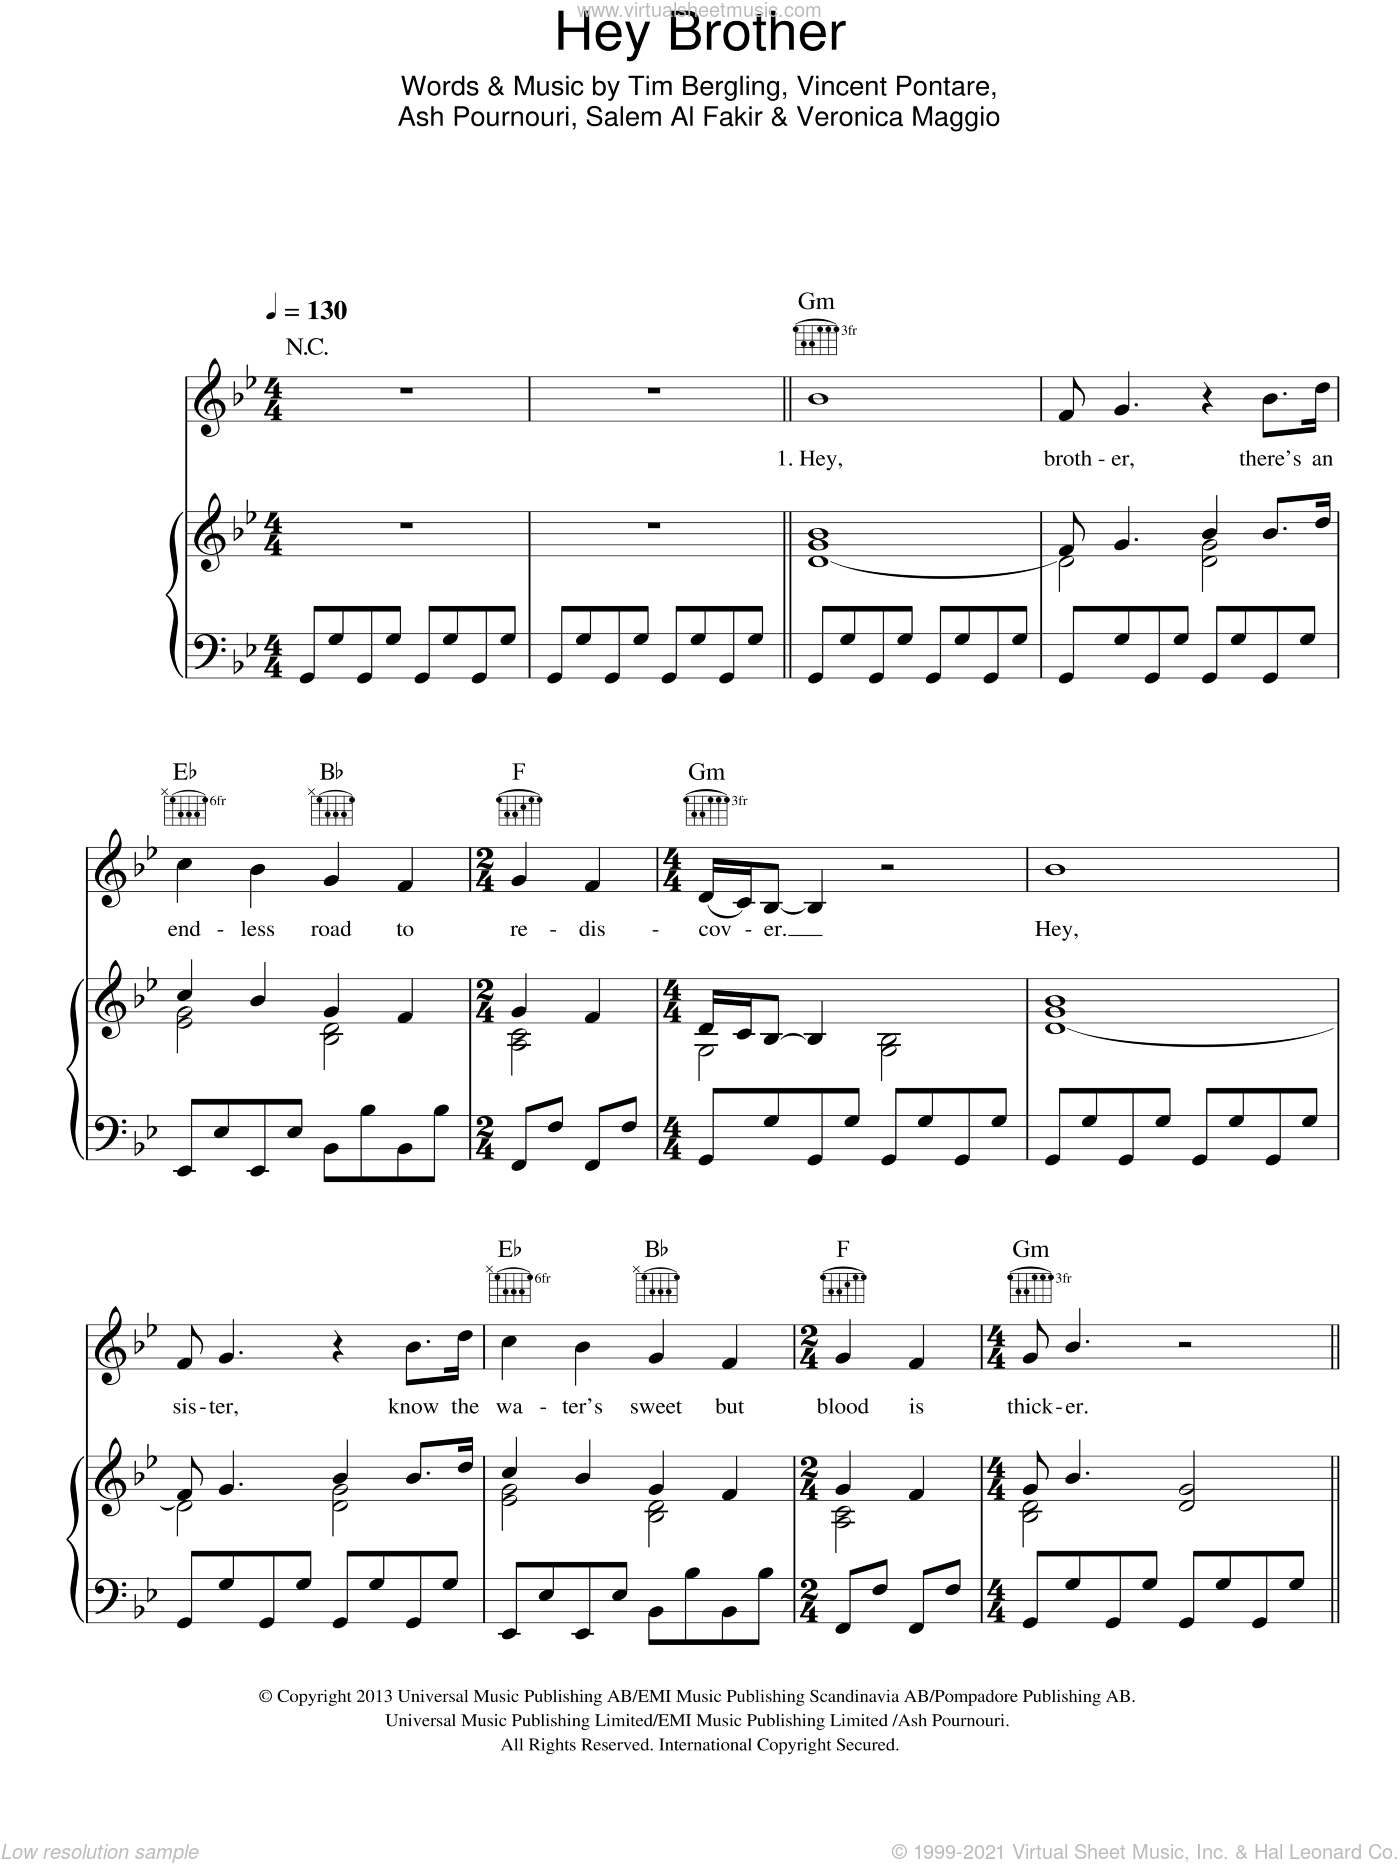 Hey Brother sheet music for voice, piano or guitar by Avicii, Ash Pournouri, Salem Al Fakir, Tim Bergling, Veronica Maggio and Vincent Pontare, intermediate skill level